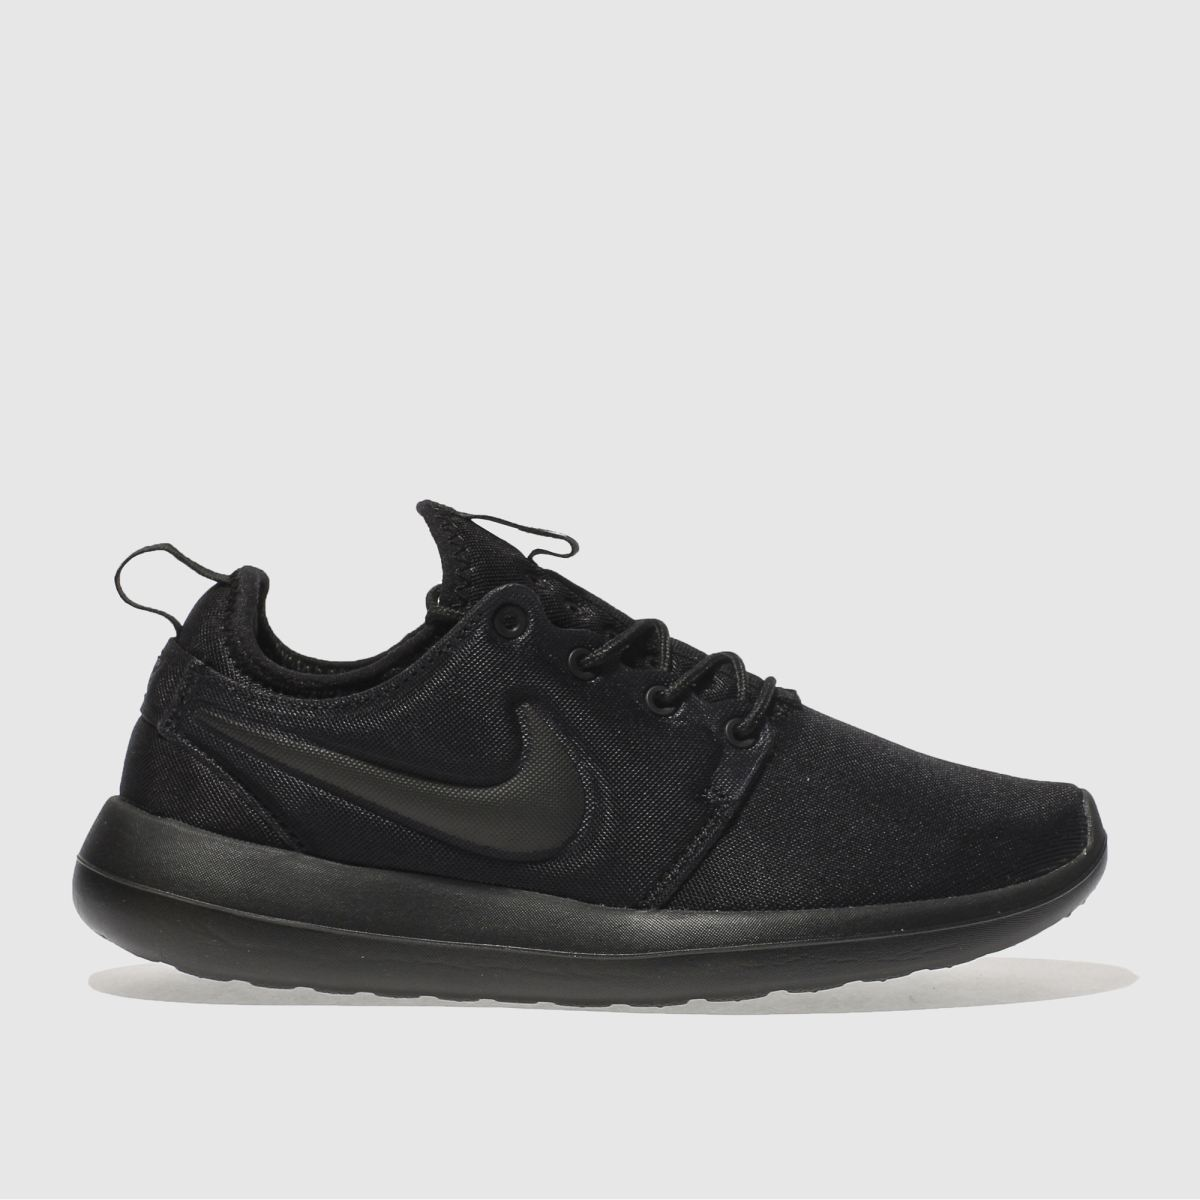 055a4dd8c5812 lcxius Nike Roshe Run Trainers